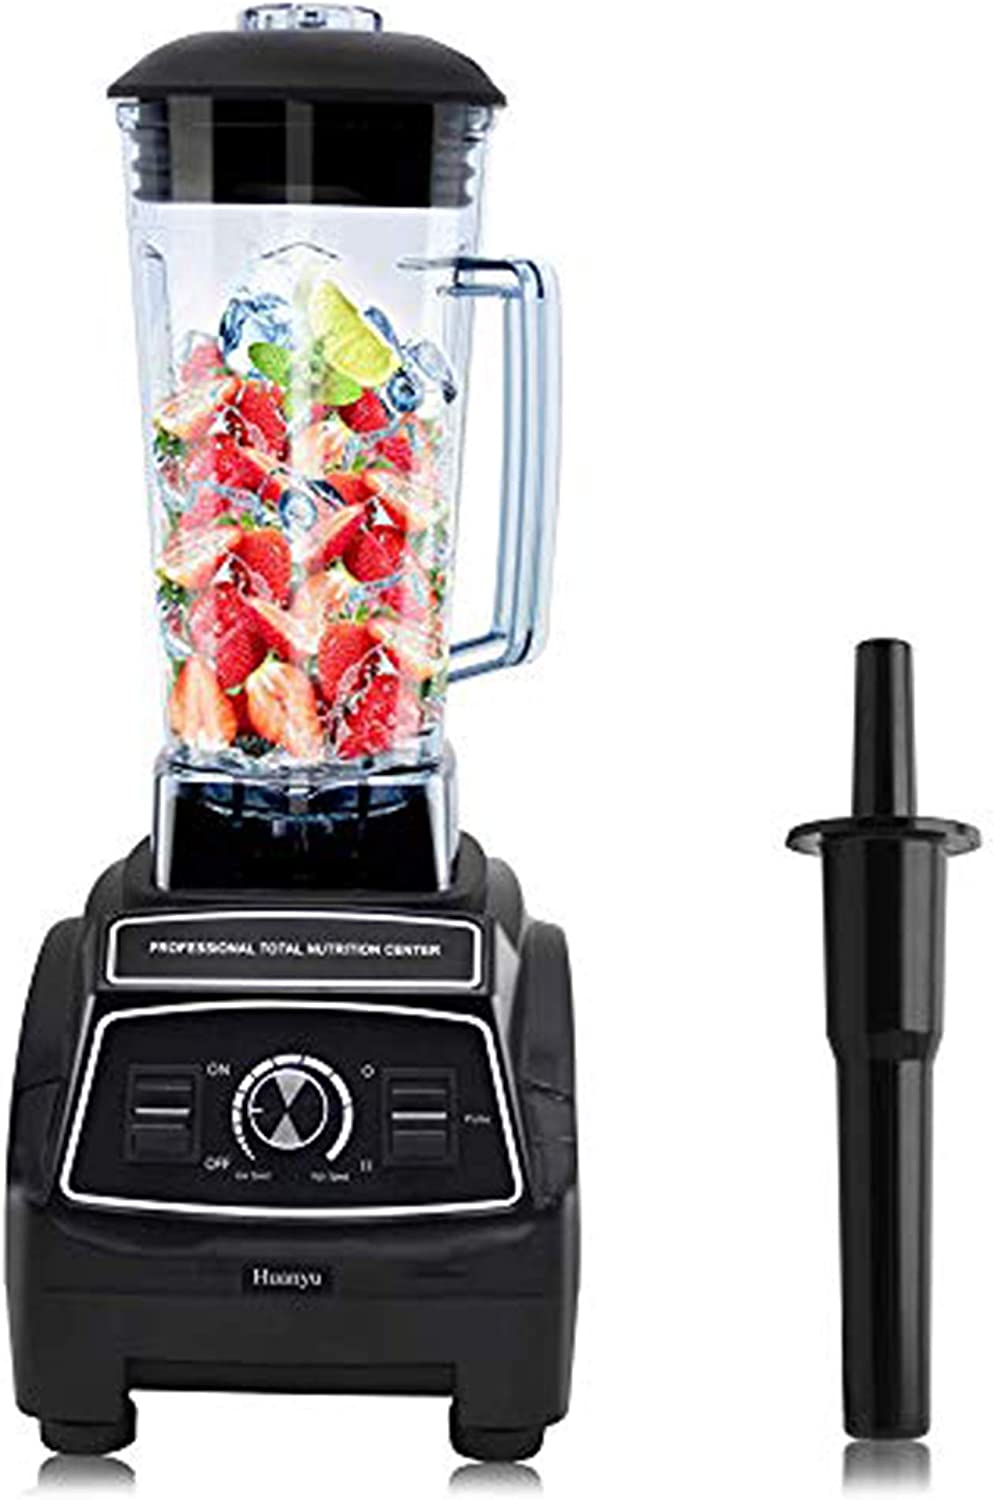 Huanyu 68oz Countertop Blender Professional Smoothie Maker Blender Food Processor Crushing Pitcher for Fruit Smoothie Ice Soy Milk Hot Soups Frozen Desserts Crush Mix Home Commercial (1800W-36000RPM, 110V US Plug)